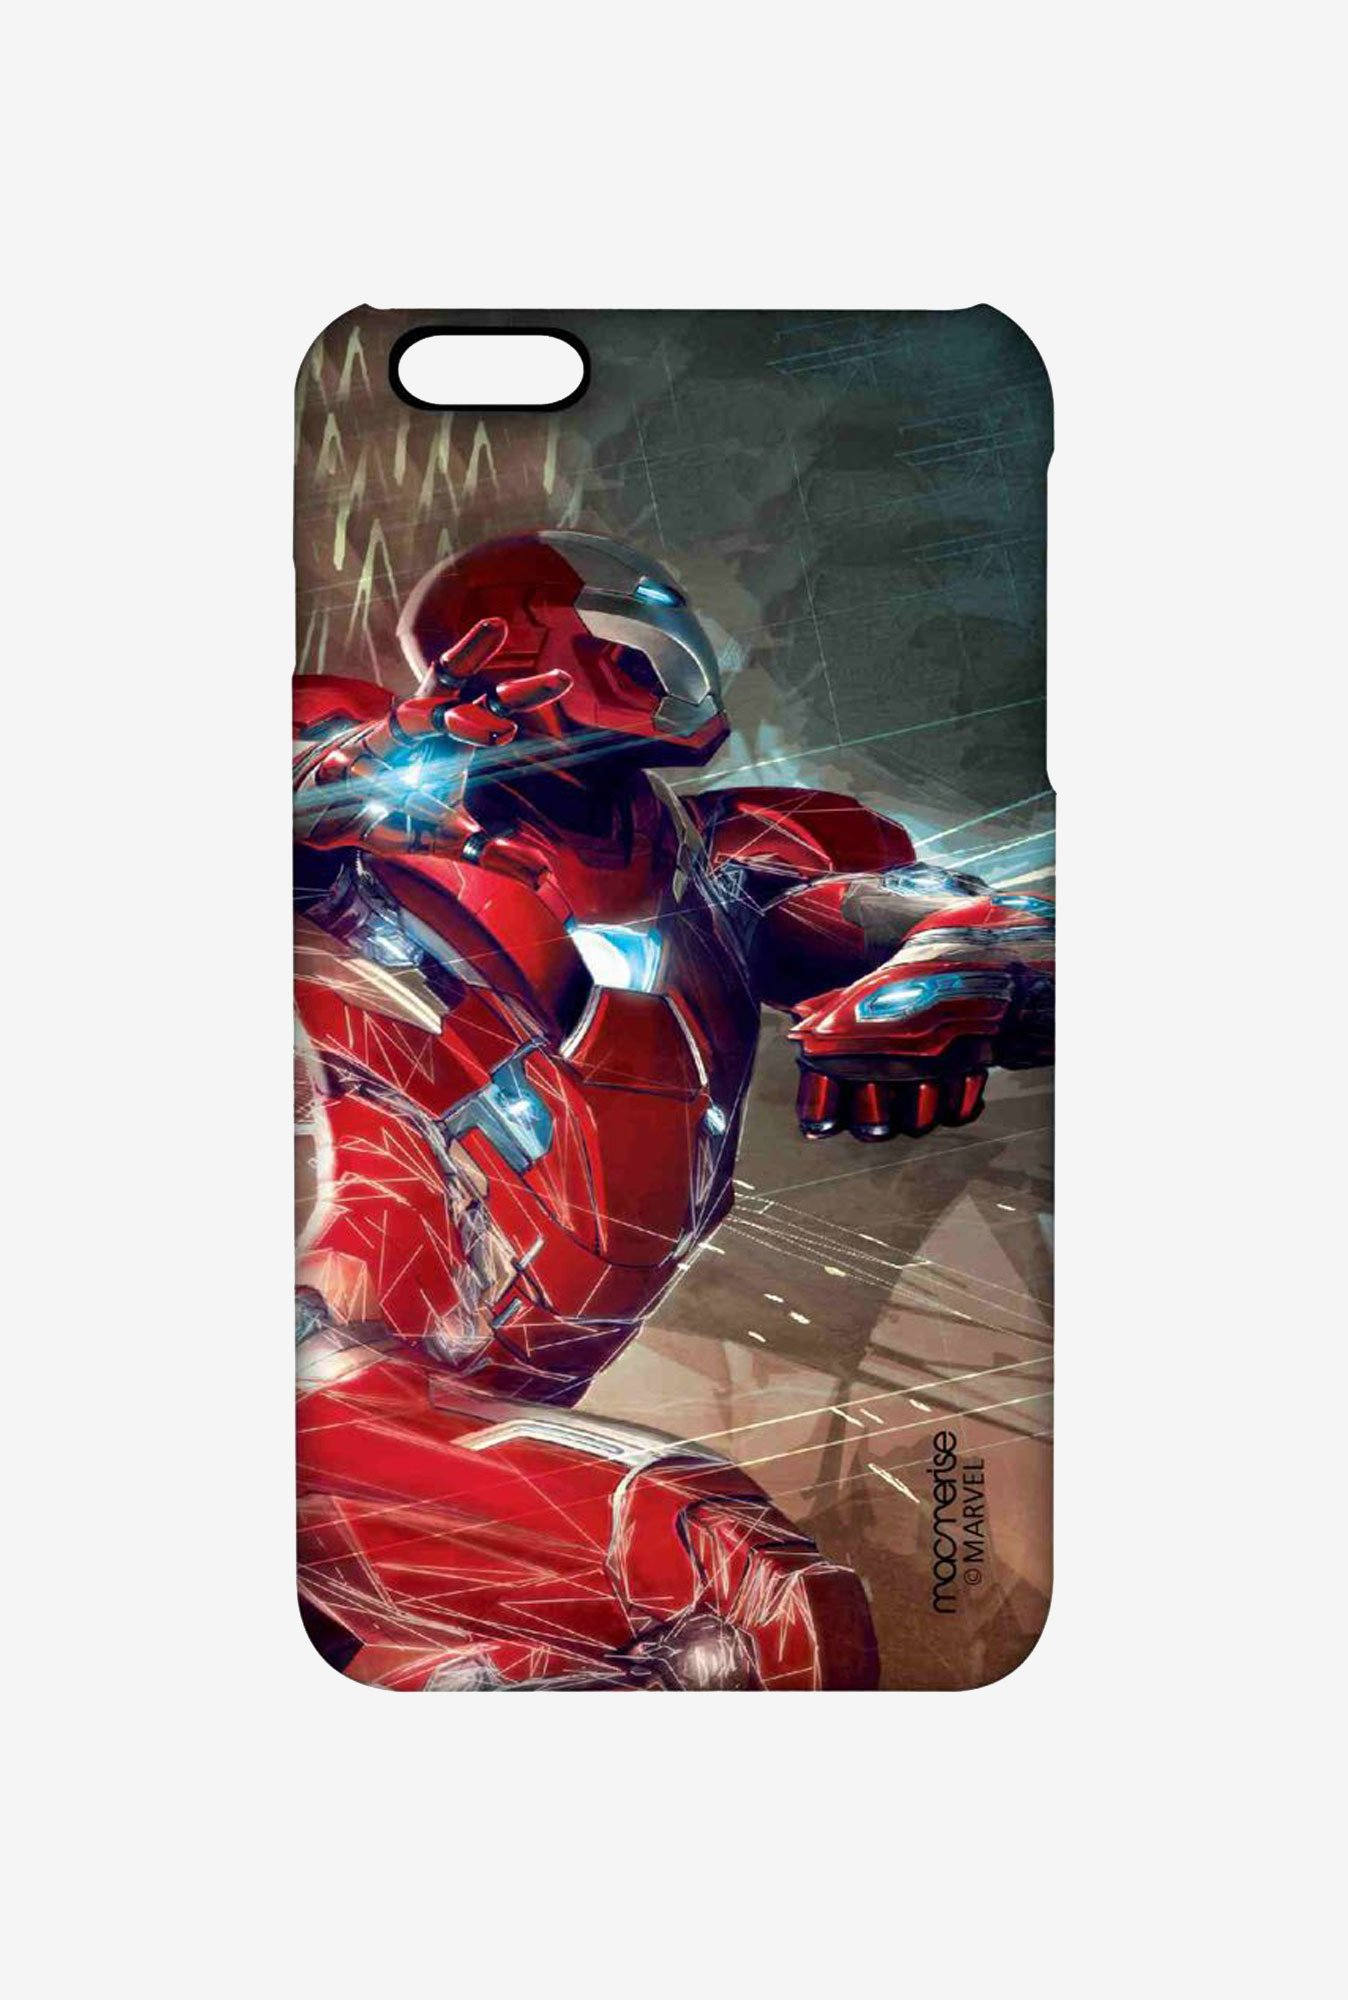 Macmerise Ironman Attack Pro Case for iPhone 6S Plus